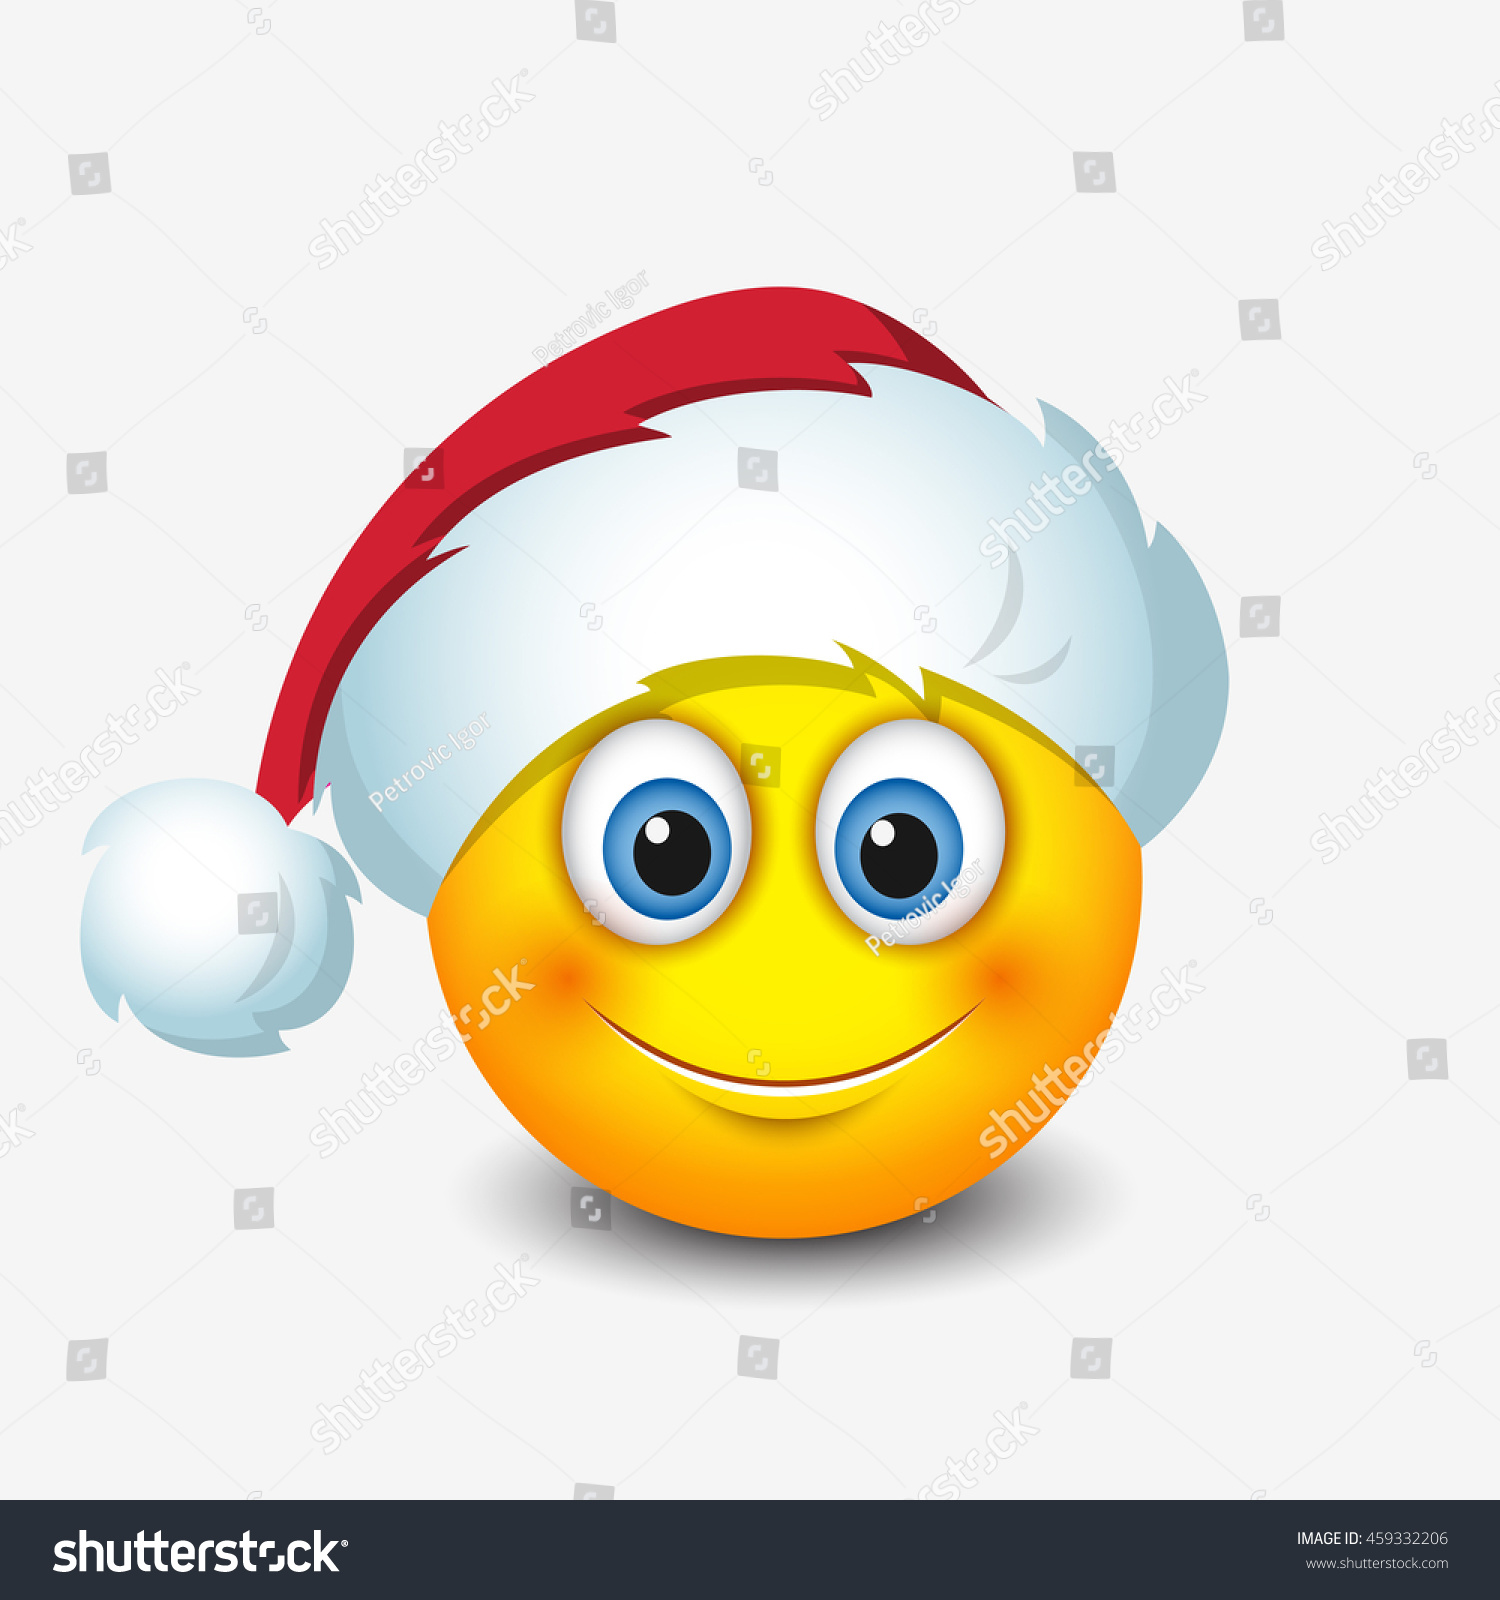 cute santa claus emoticon smiley emoji vector. Black Bedroom Furniture Sets. Home Design Ideas